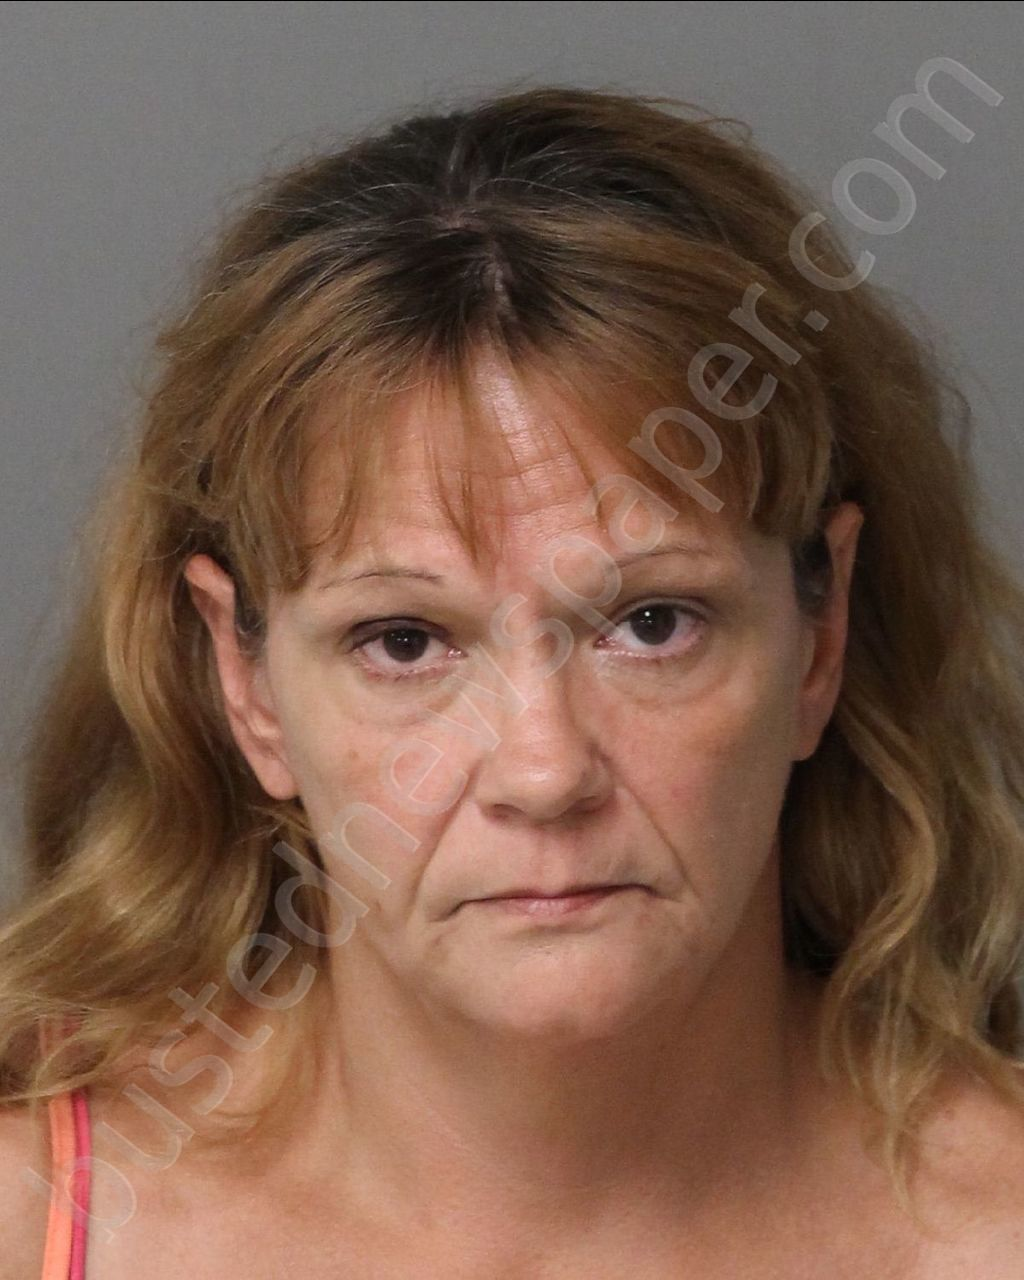 DENTON,LORETTA PATRICE Mugshot, Wake County, North Carolina - 2019